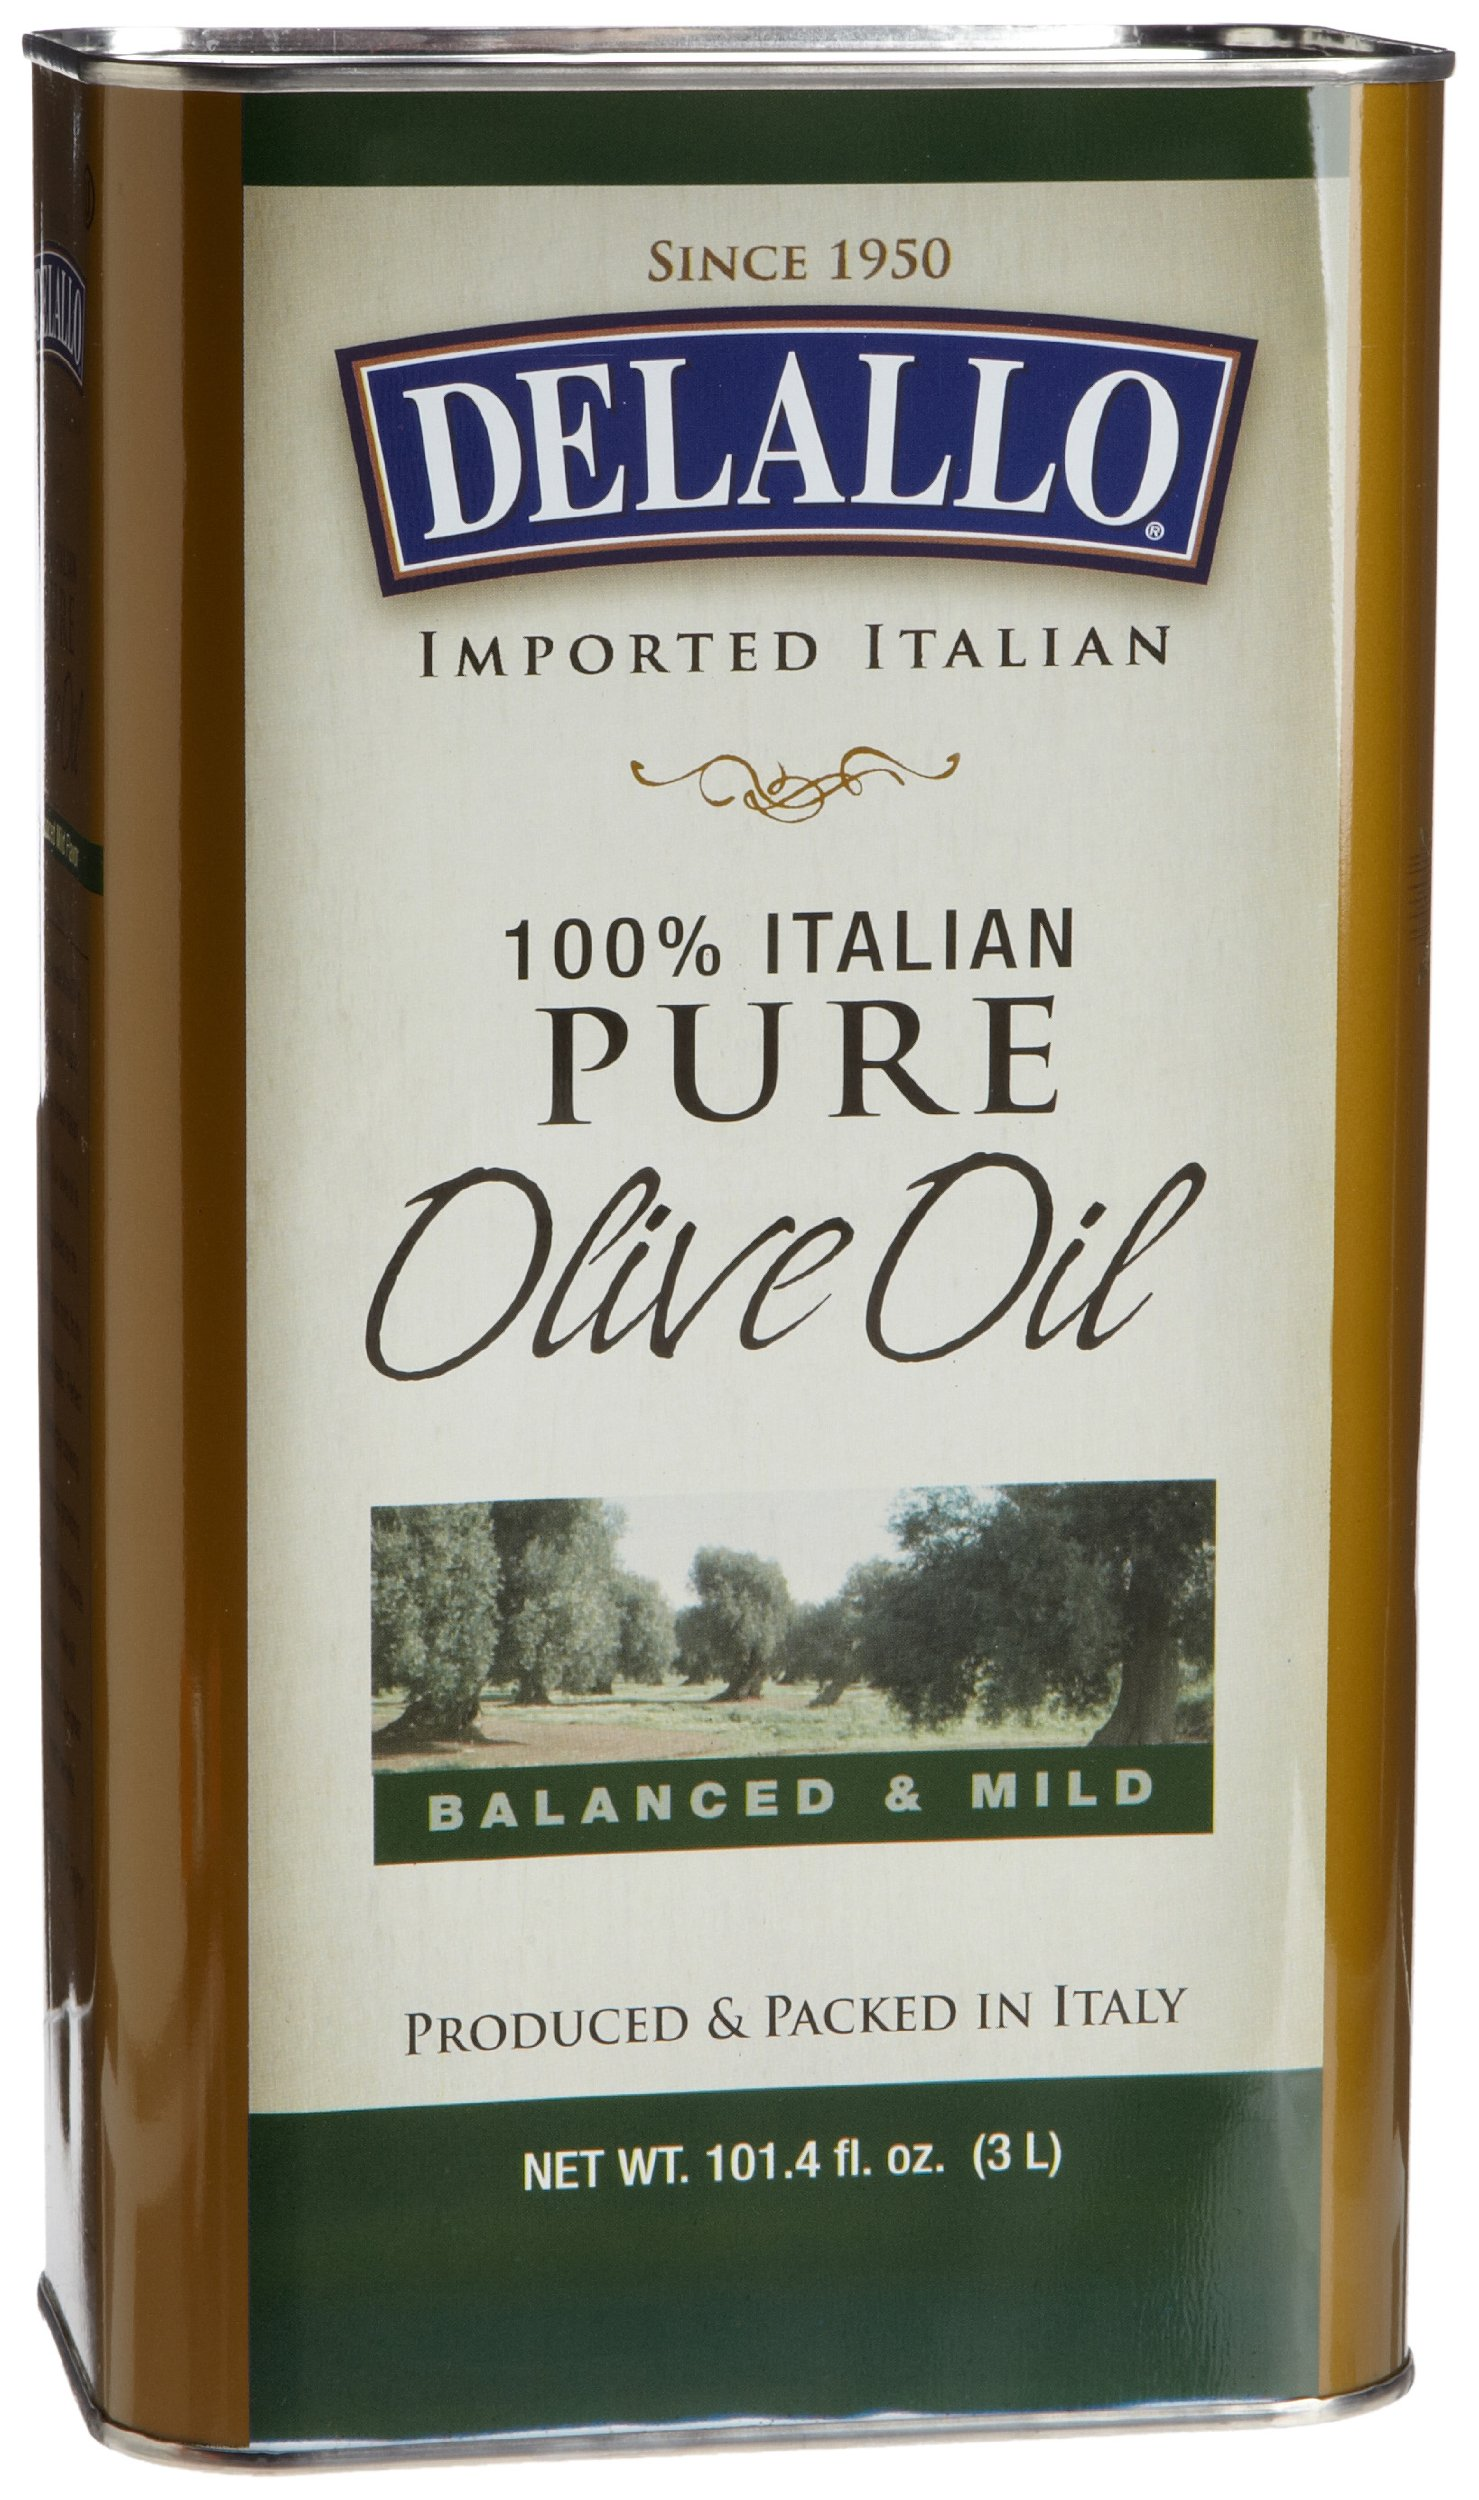 DeLallo Pure Olive Oil, 3-Liter Cans (Pack of 4)